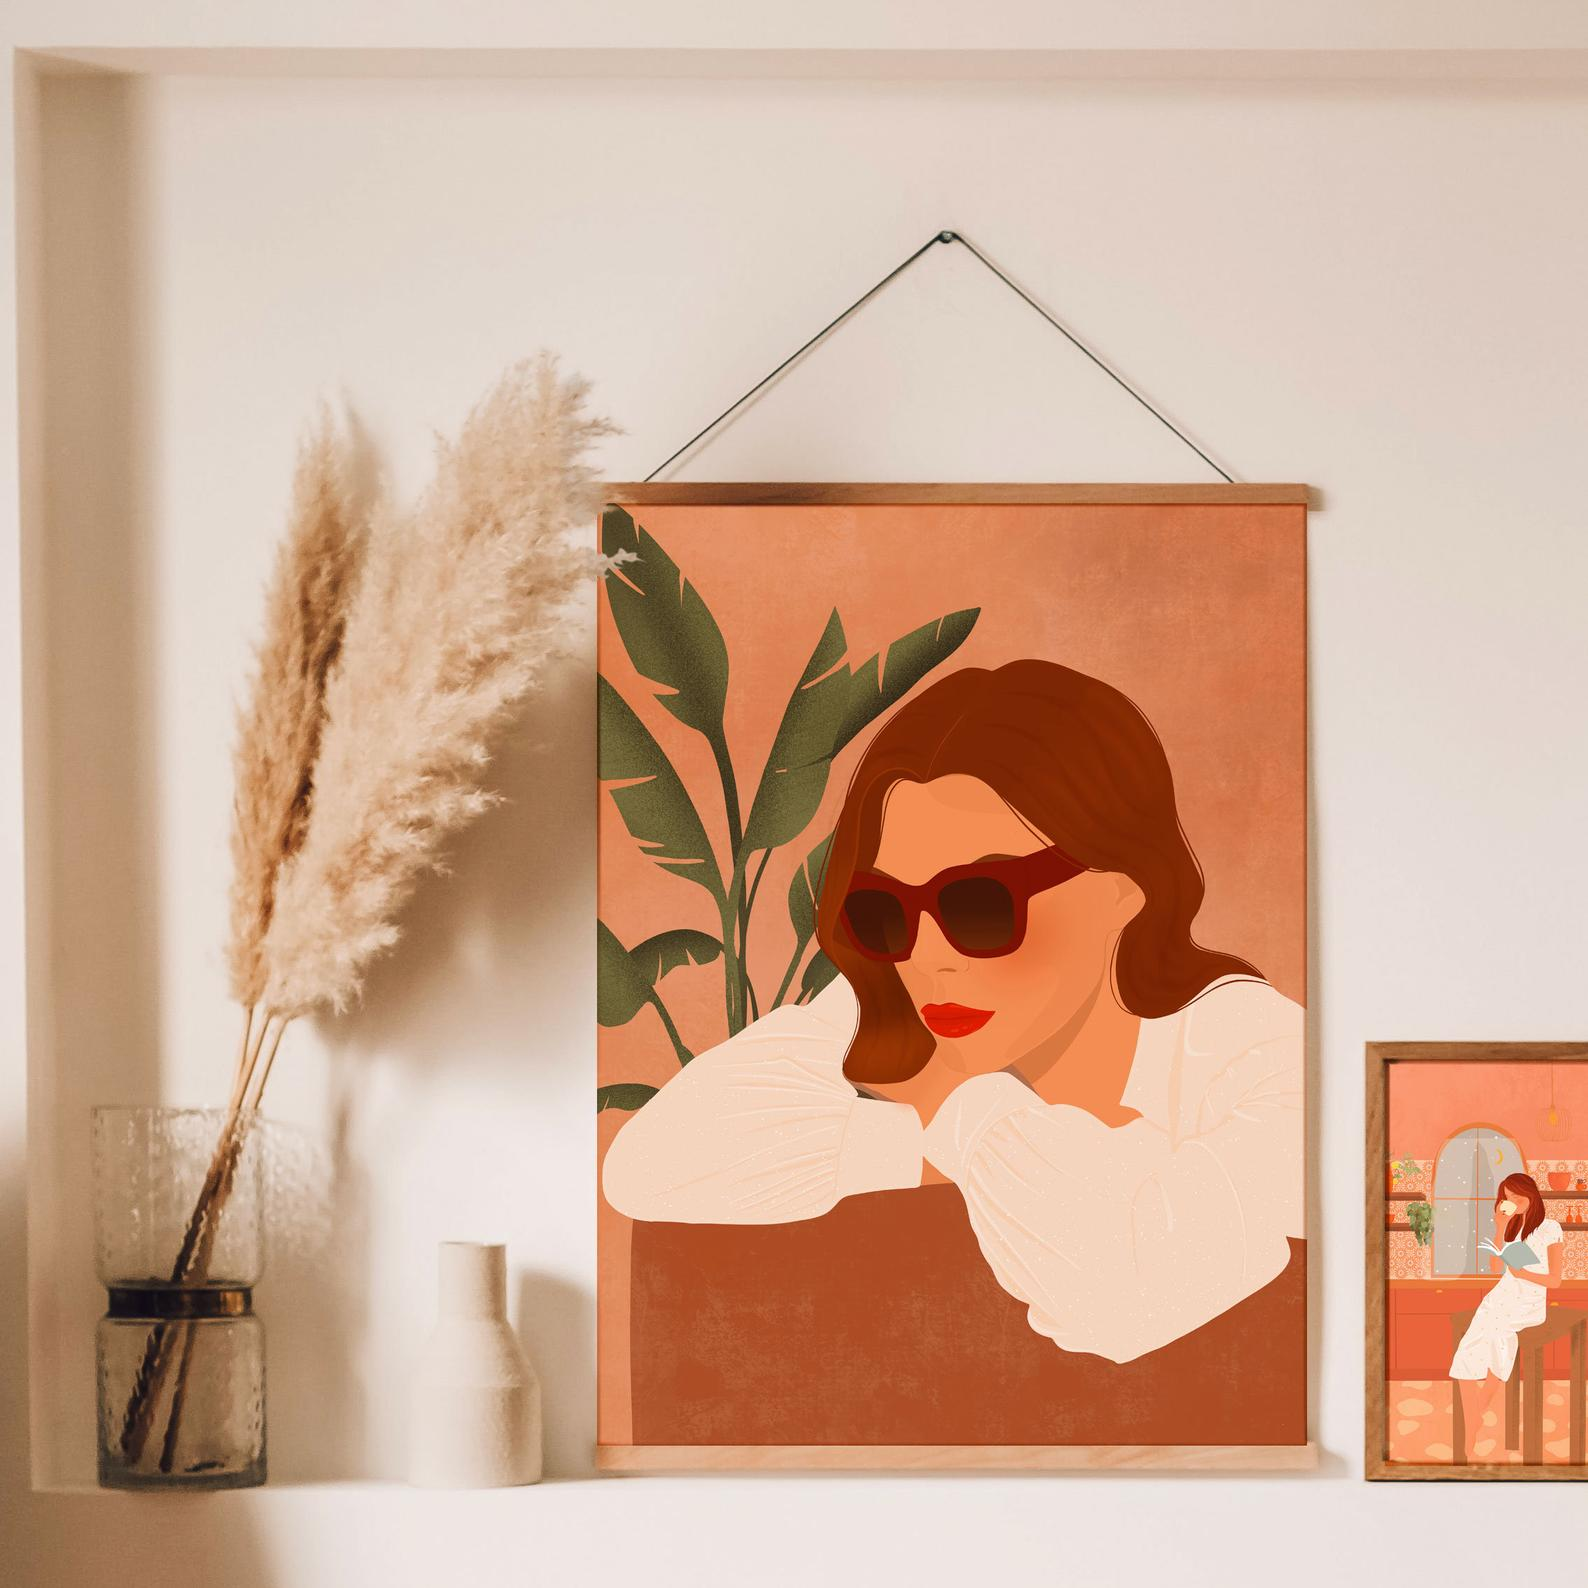 Affiche Itsfunnyhowww | Femme aux lunettes